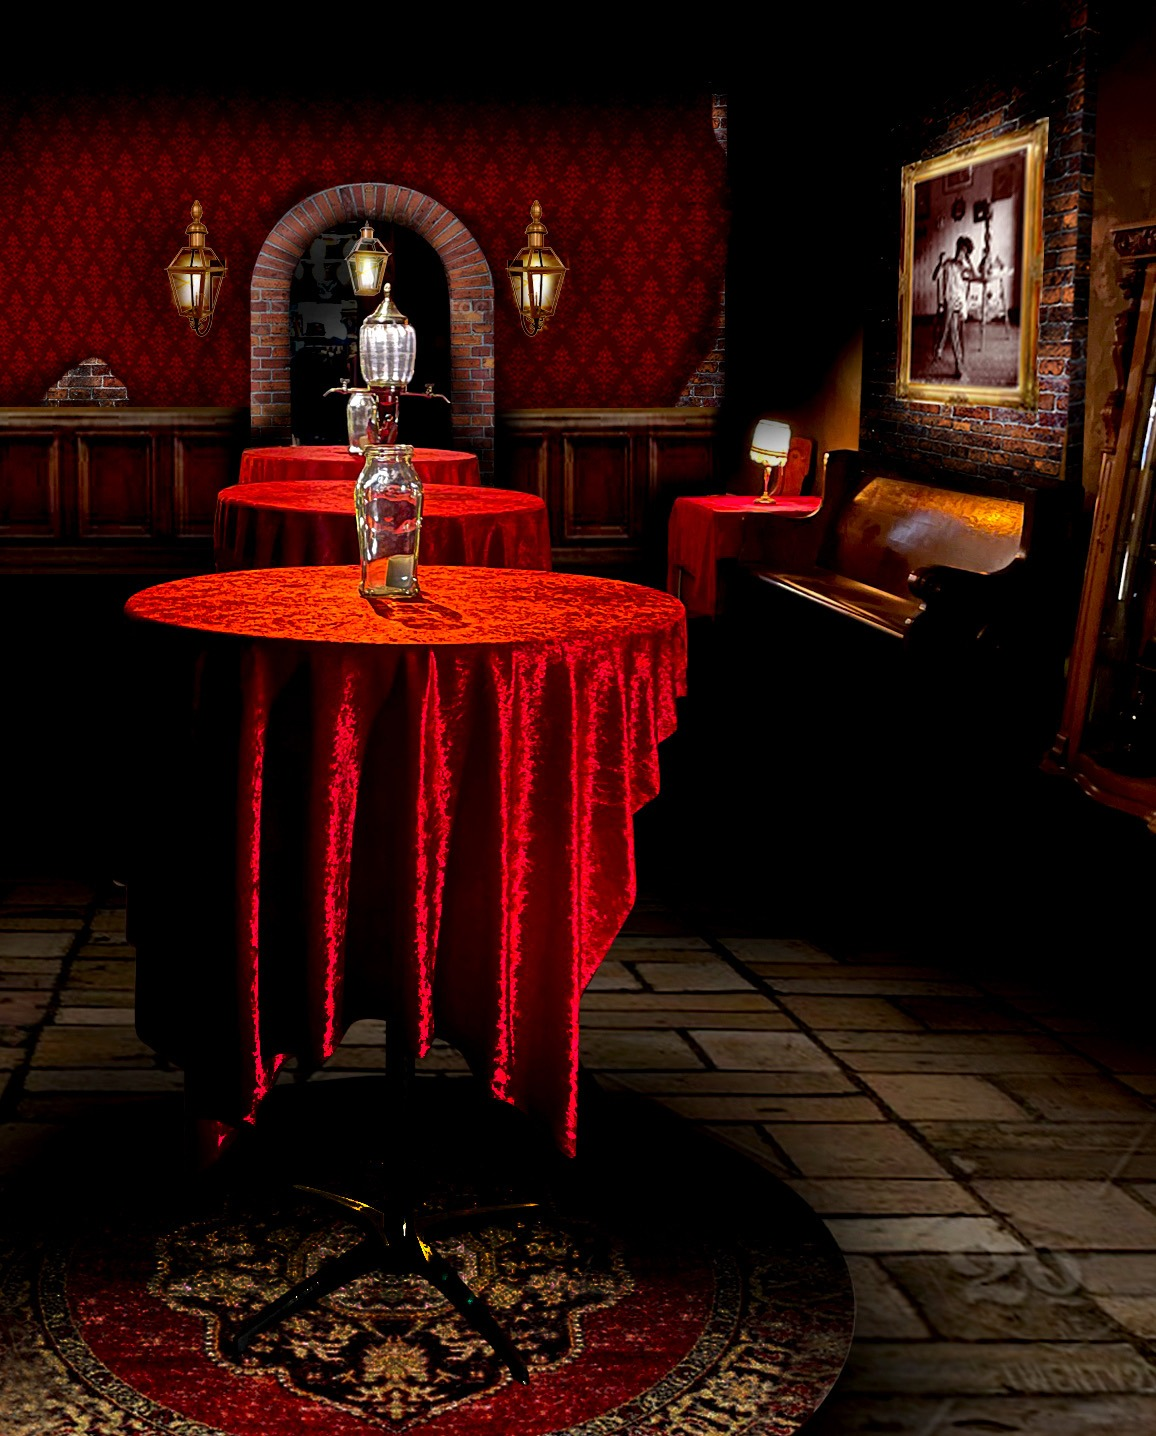 storyville-lounge-at-dr-tumbletys-inspired-by-spirits-distilling-co-pittsburgh-pa